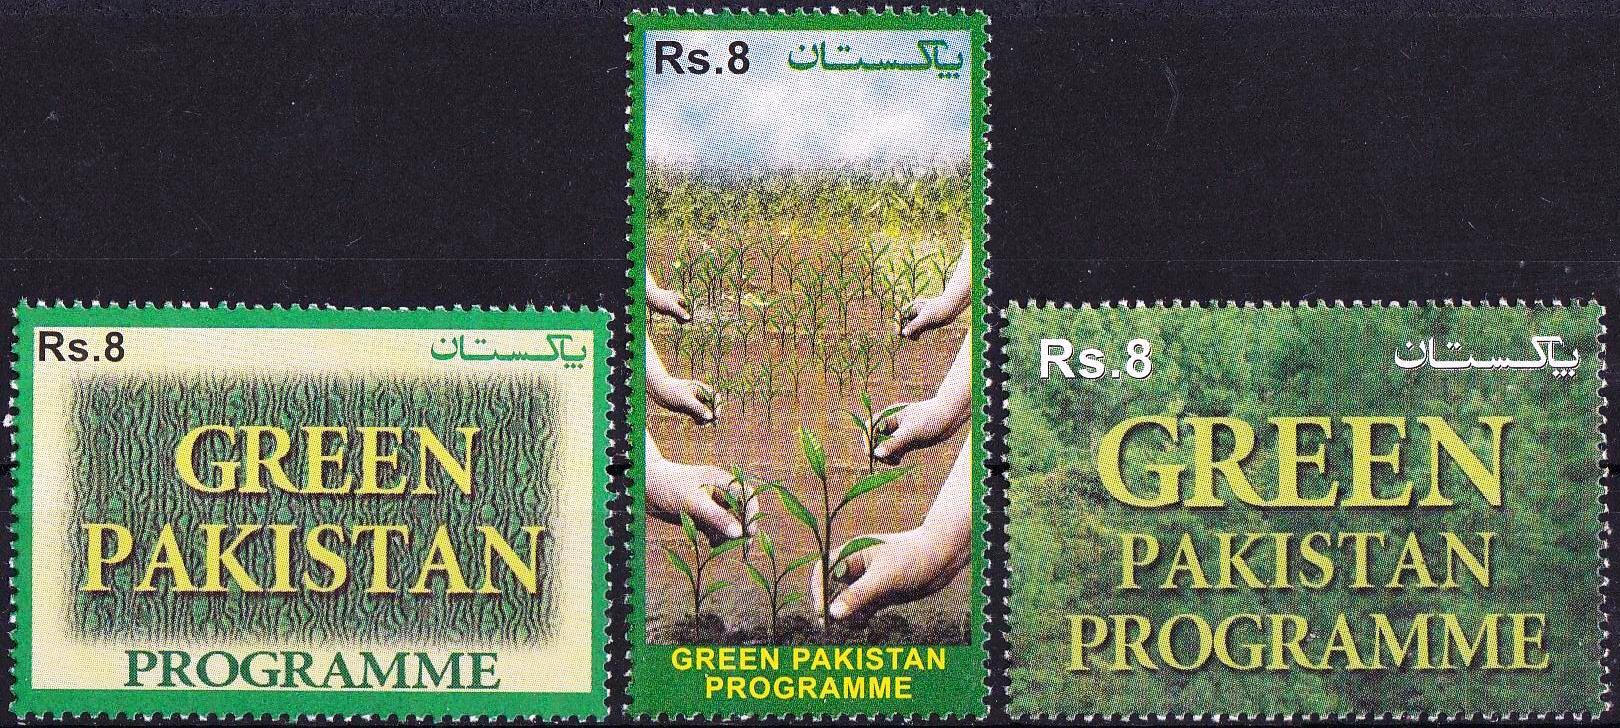 Pakistan Stamps 2018 Green Pakistan Programme MNH